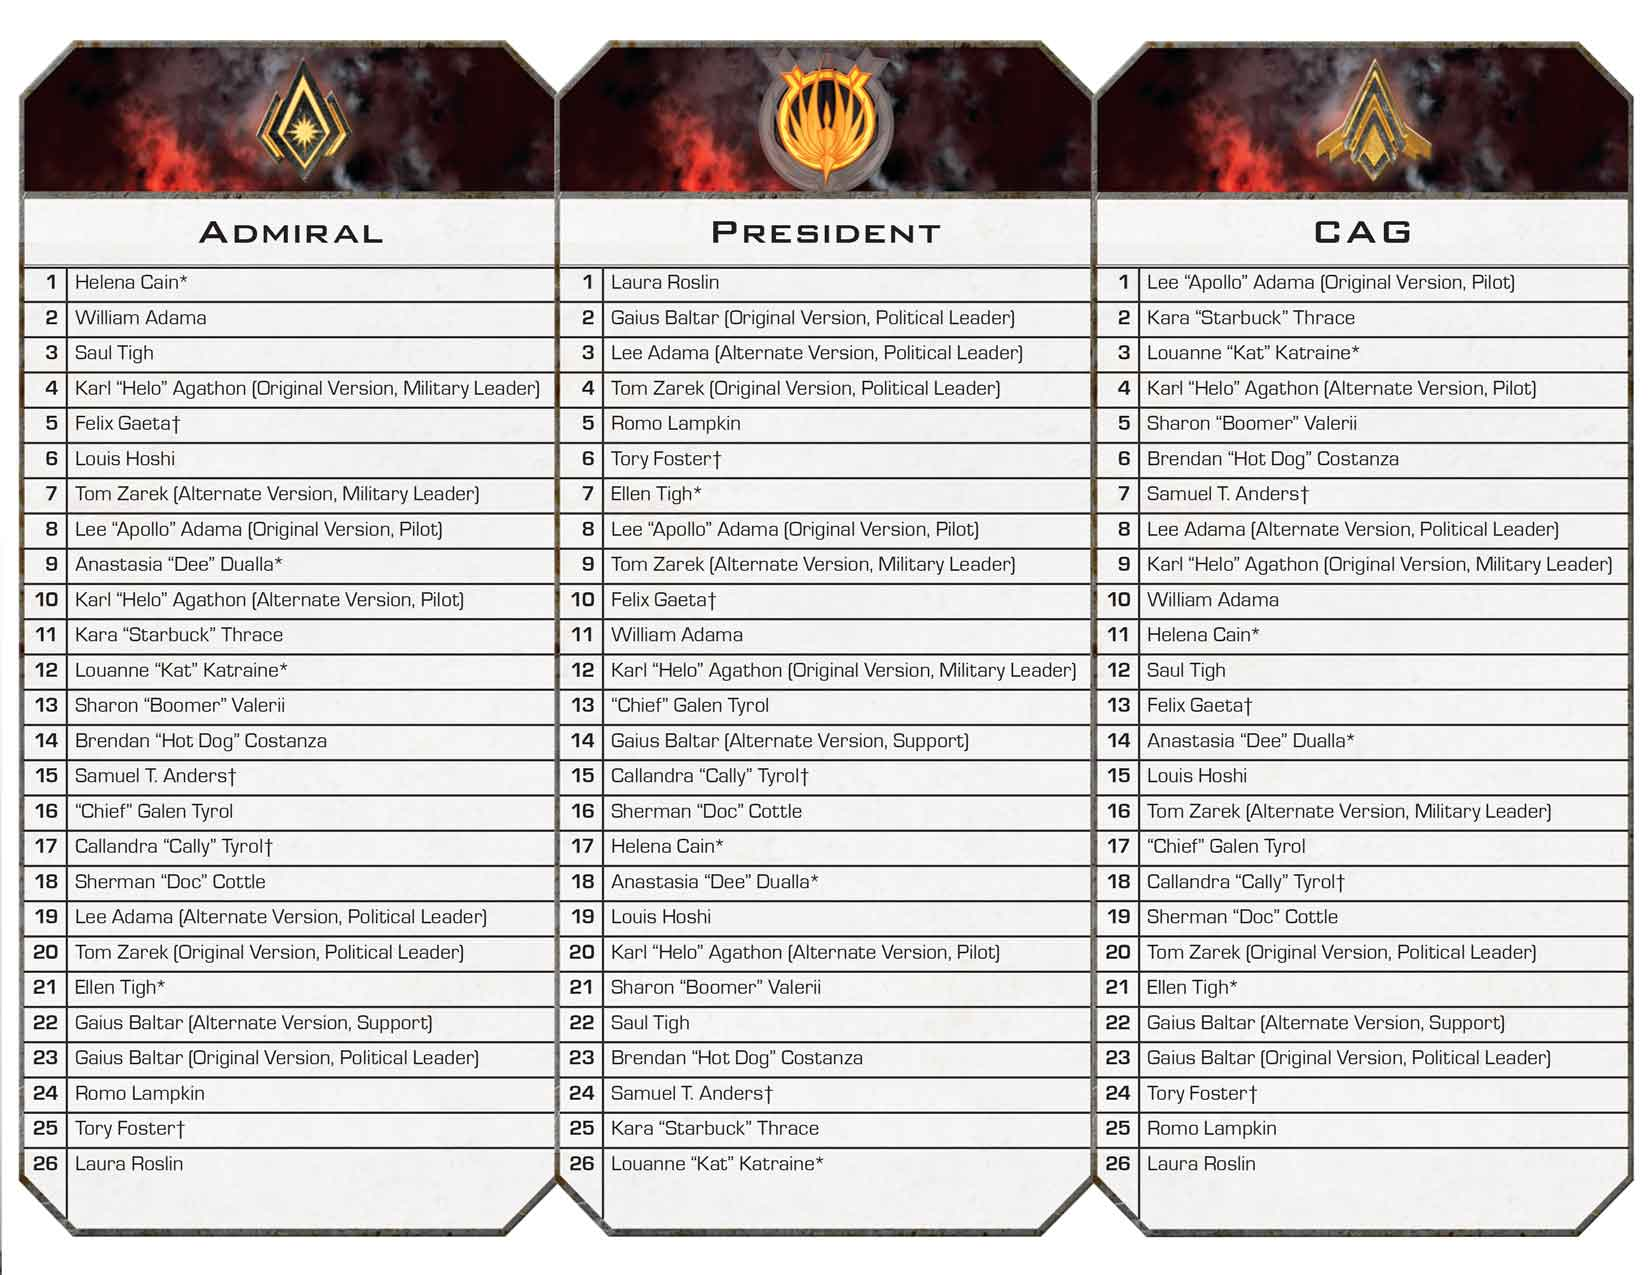 battlestar galactica board game rules pdf